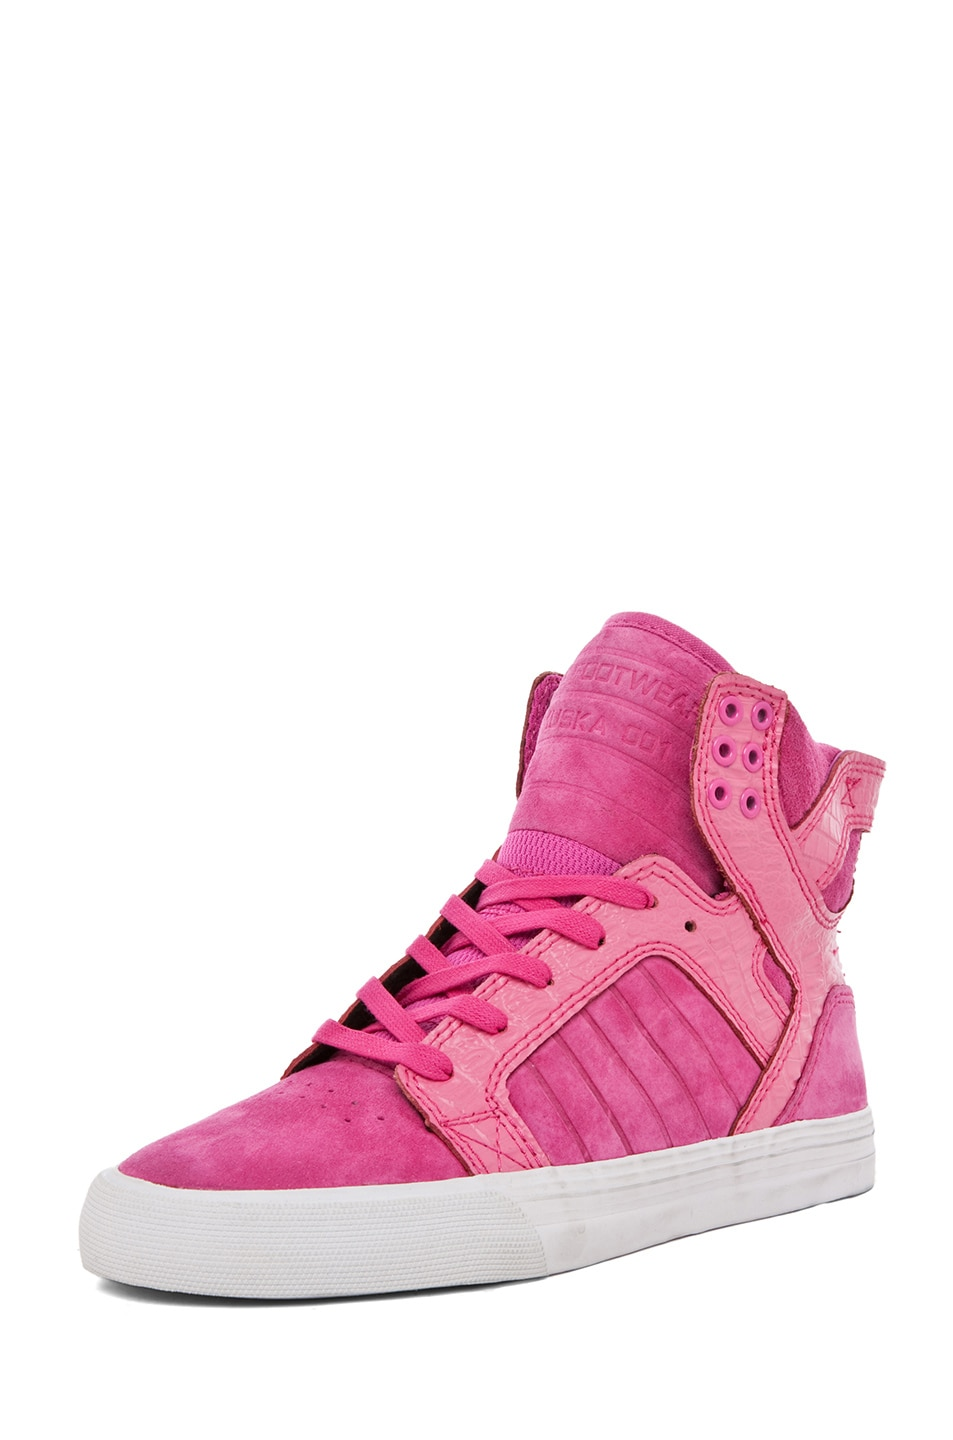 Image 2 of Supra PINK PARTY EXCLUSIVE Skytop Sneaker in Pink